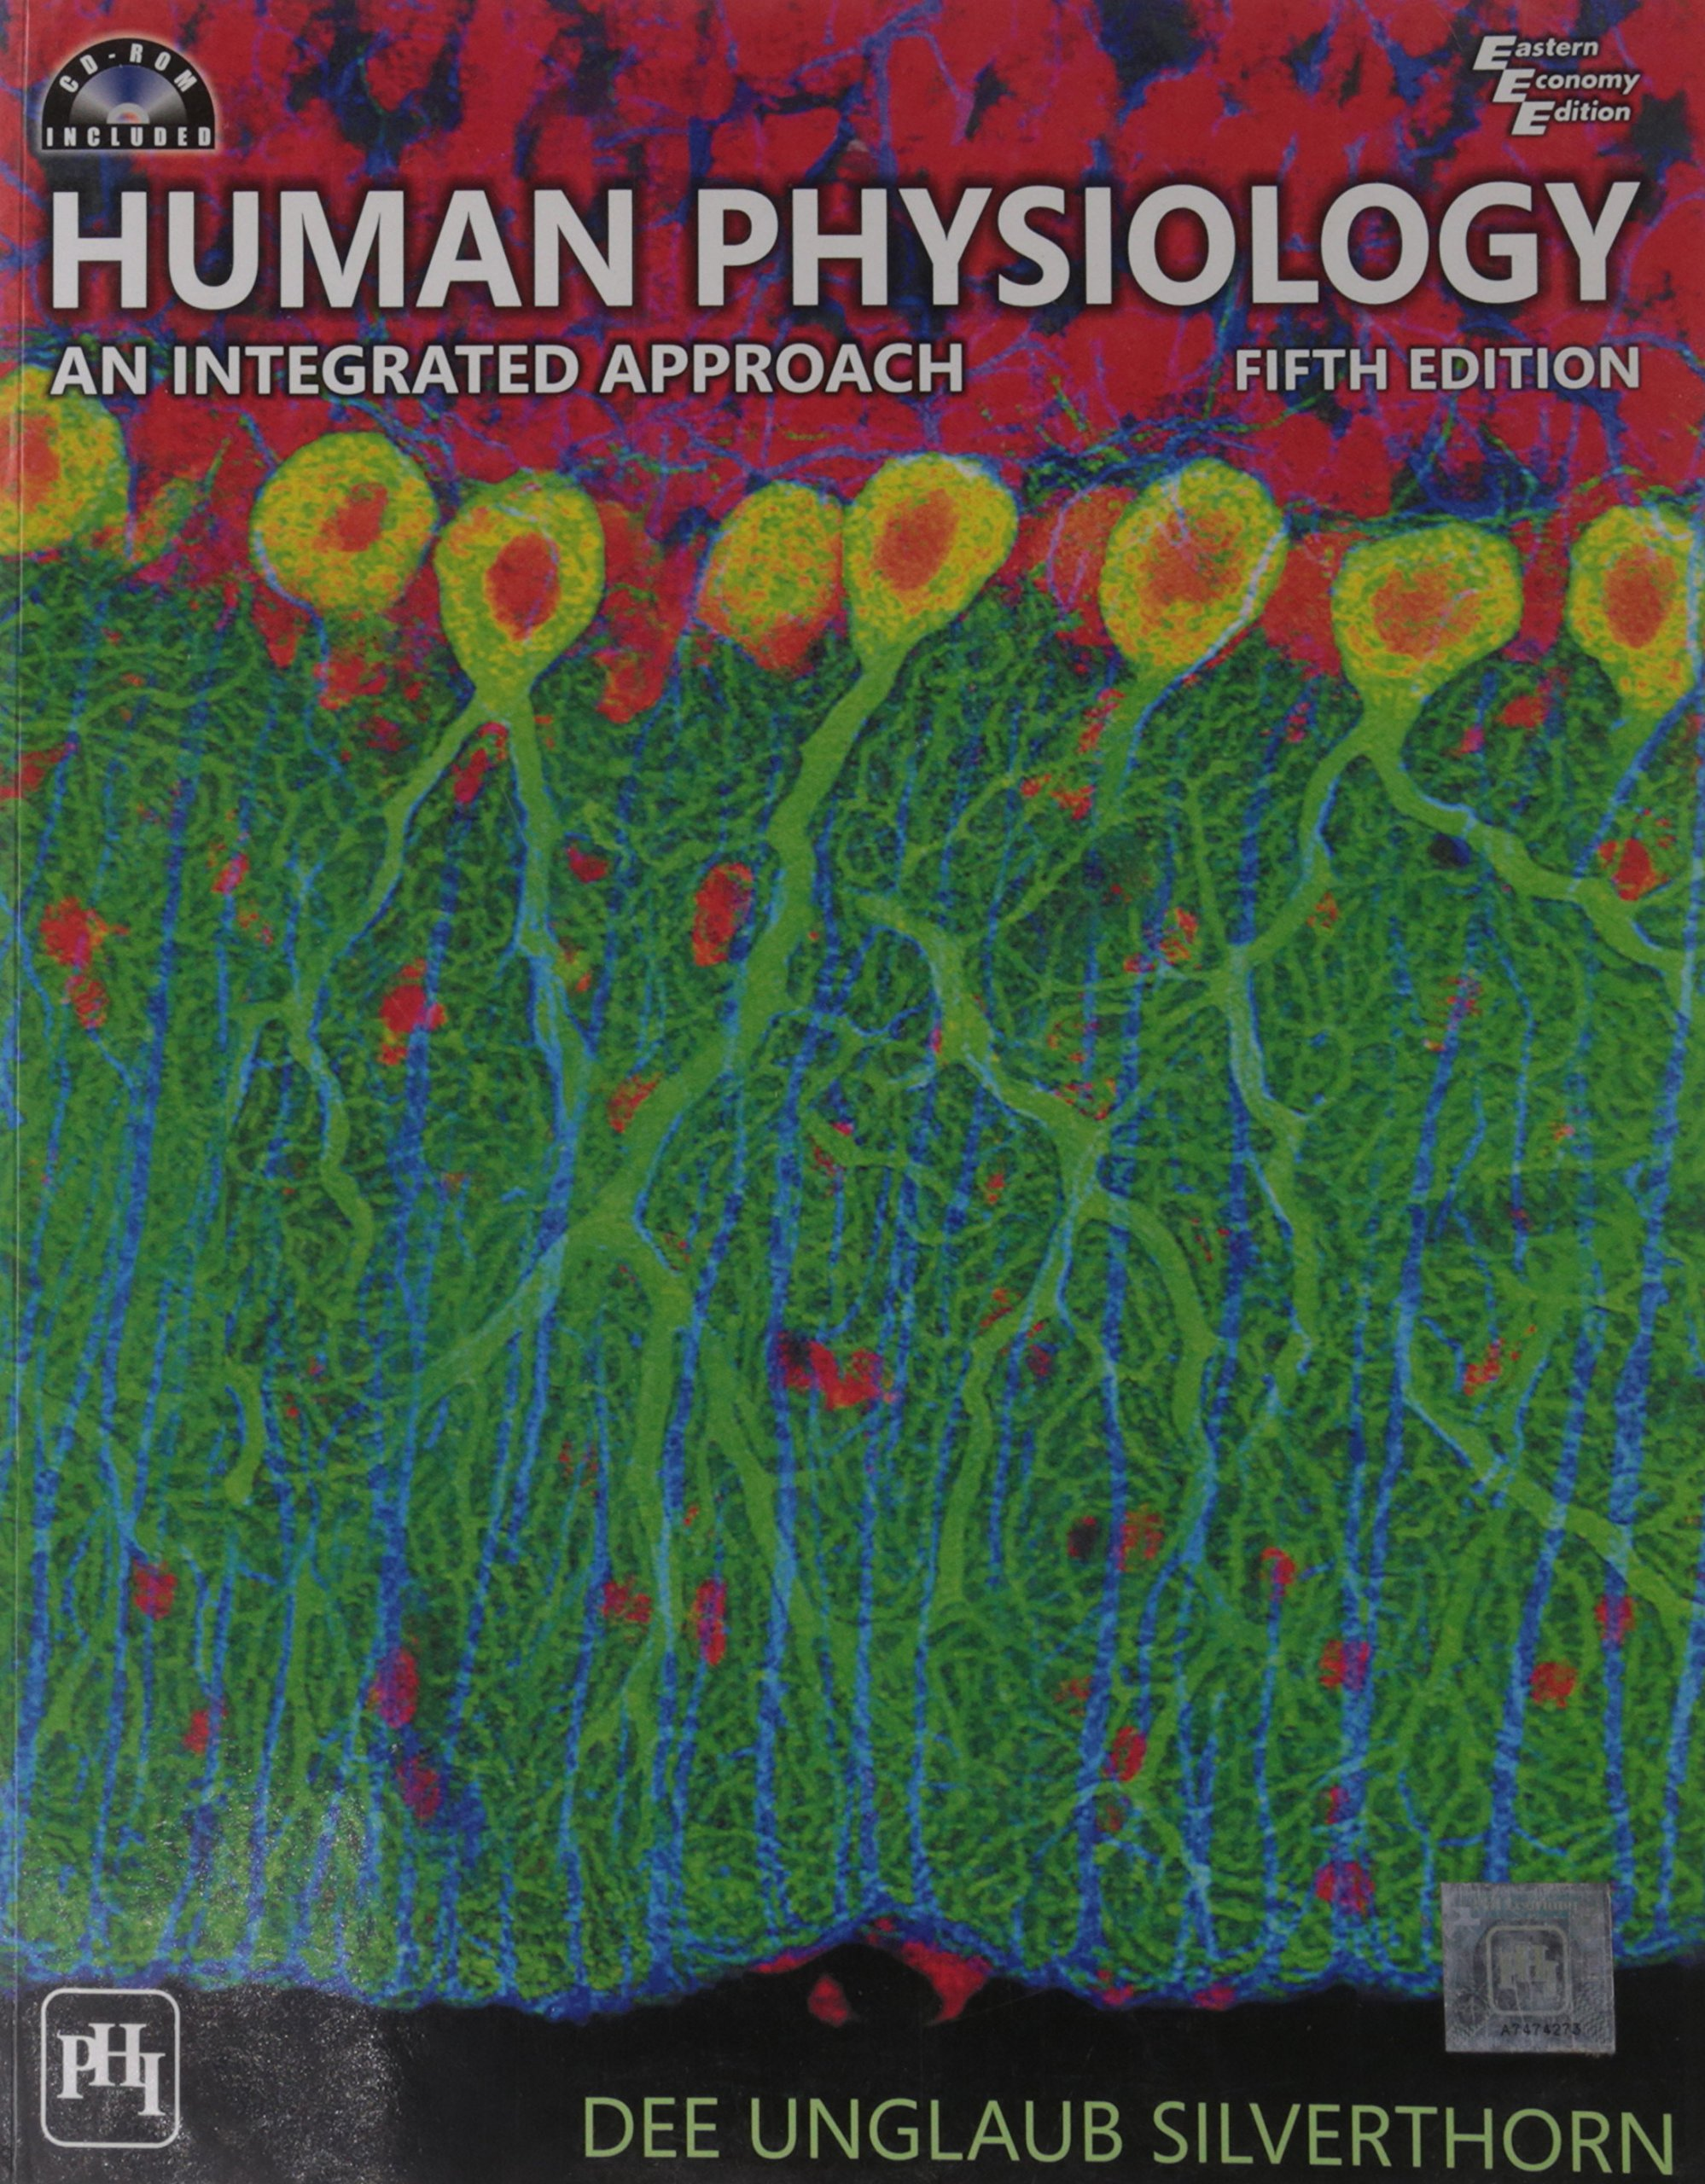 Human physiology an integrated approach 5th edition silverthorn human physiology an integrated approach 5th edition silverthorn dee unglaub 9788120344167 amazon books fandeluxe Image collections